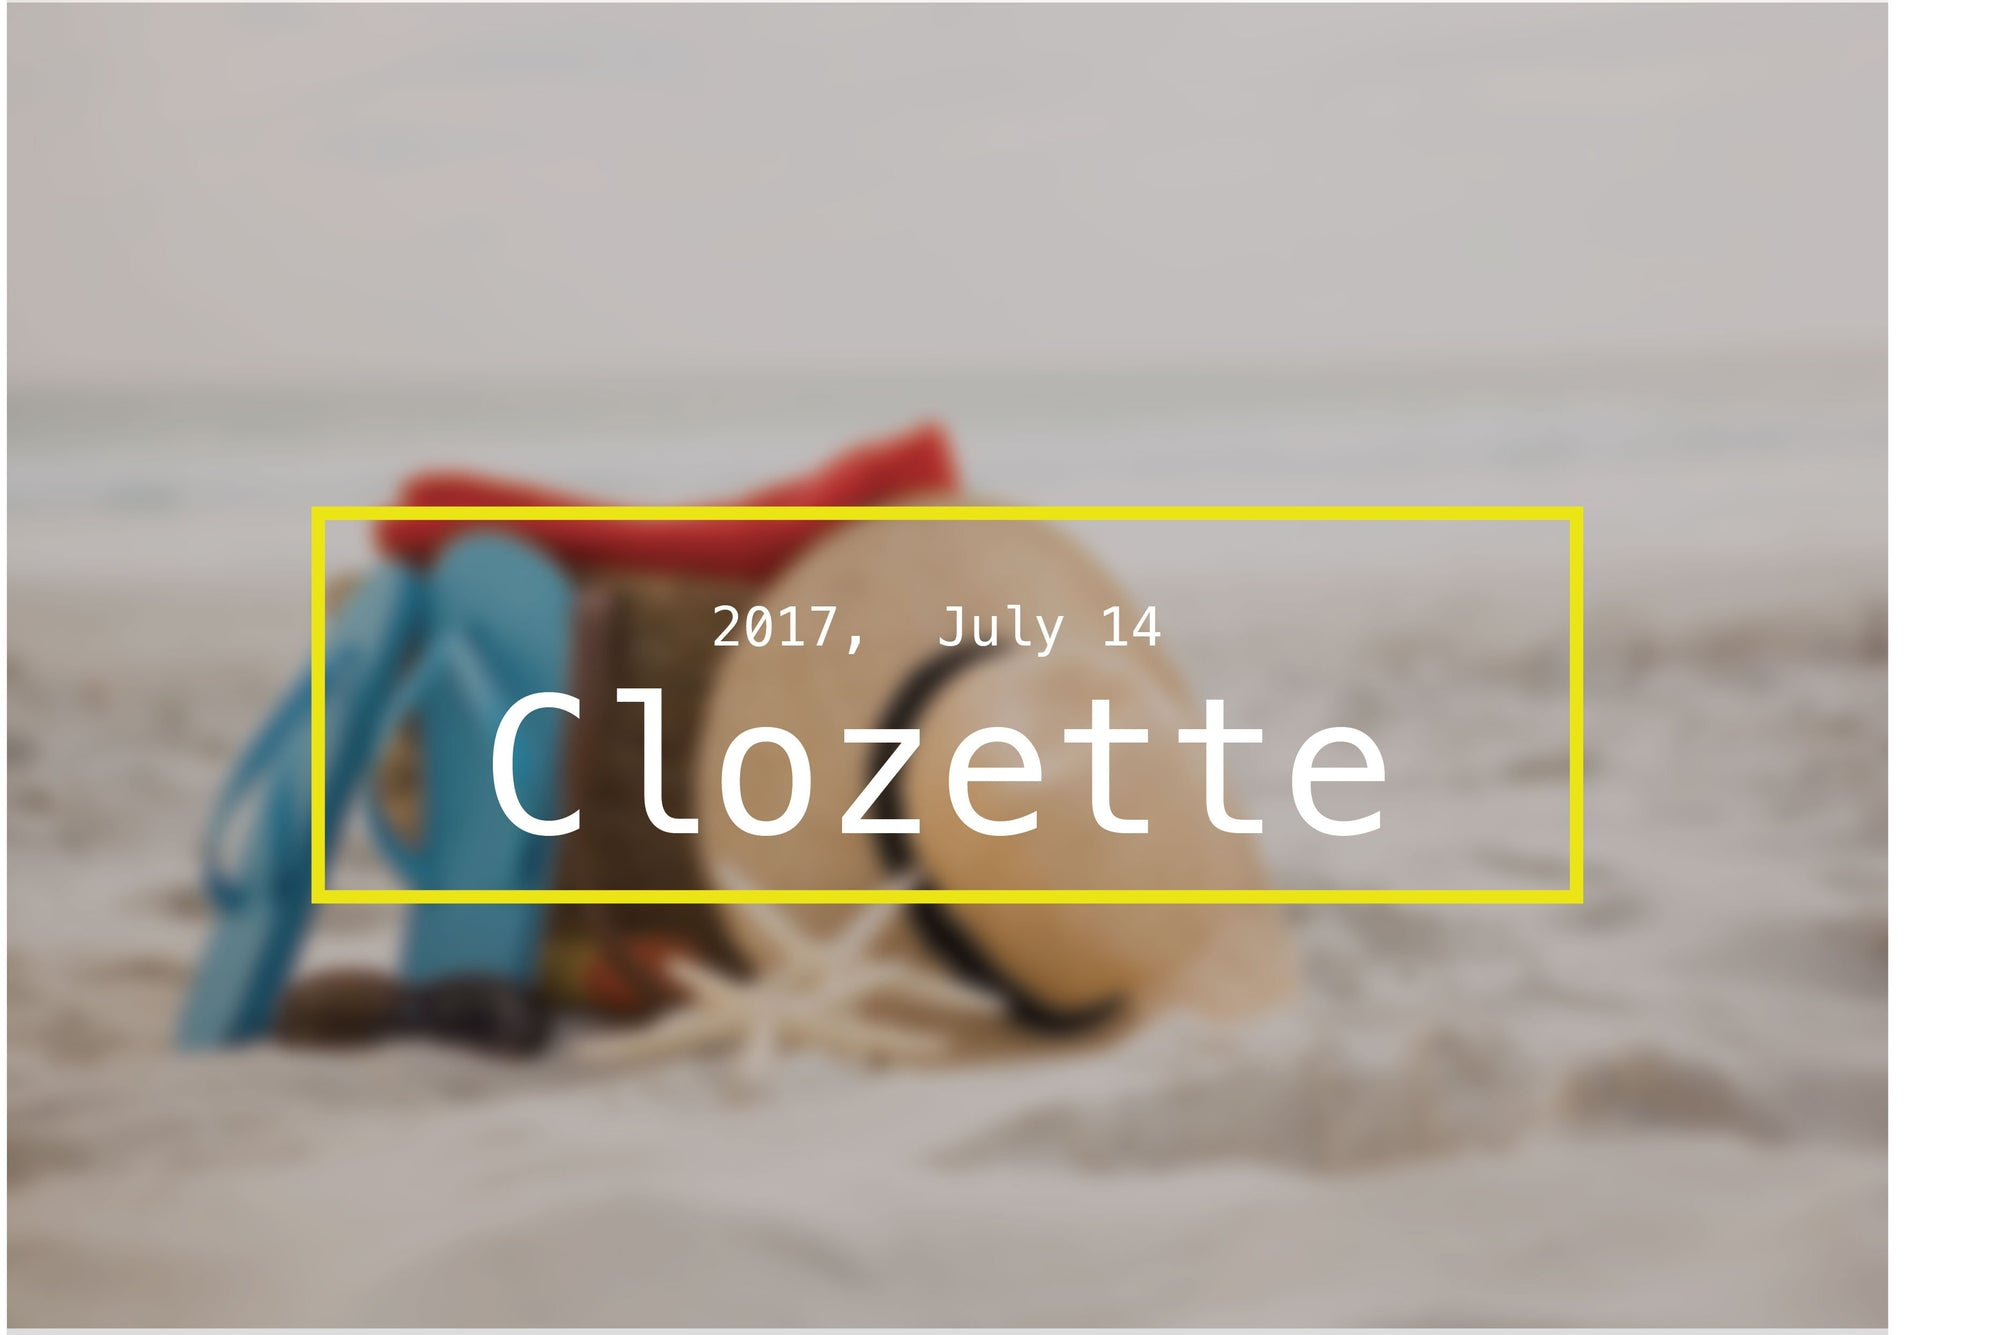 CLOZETTE, 2017, July